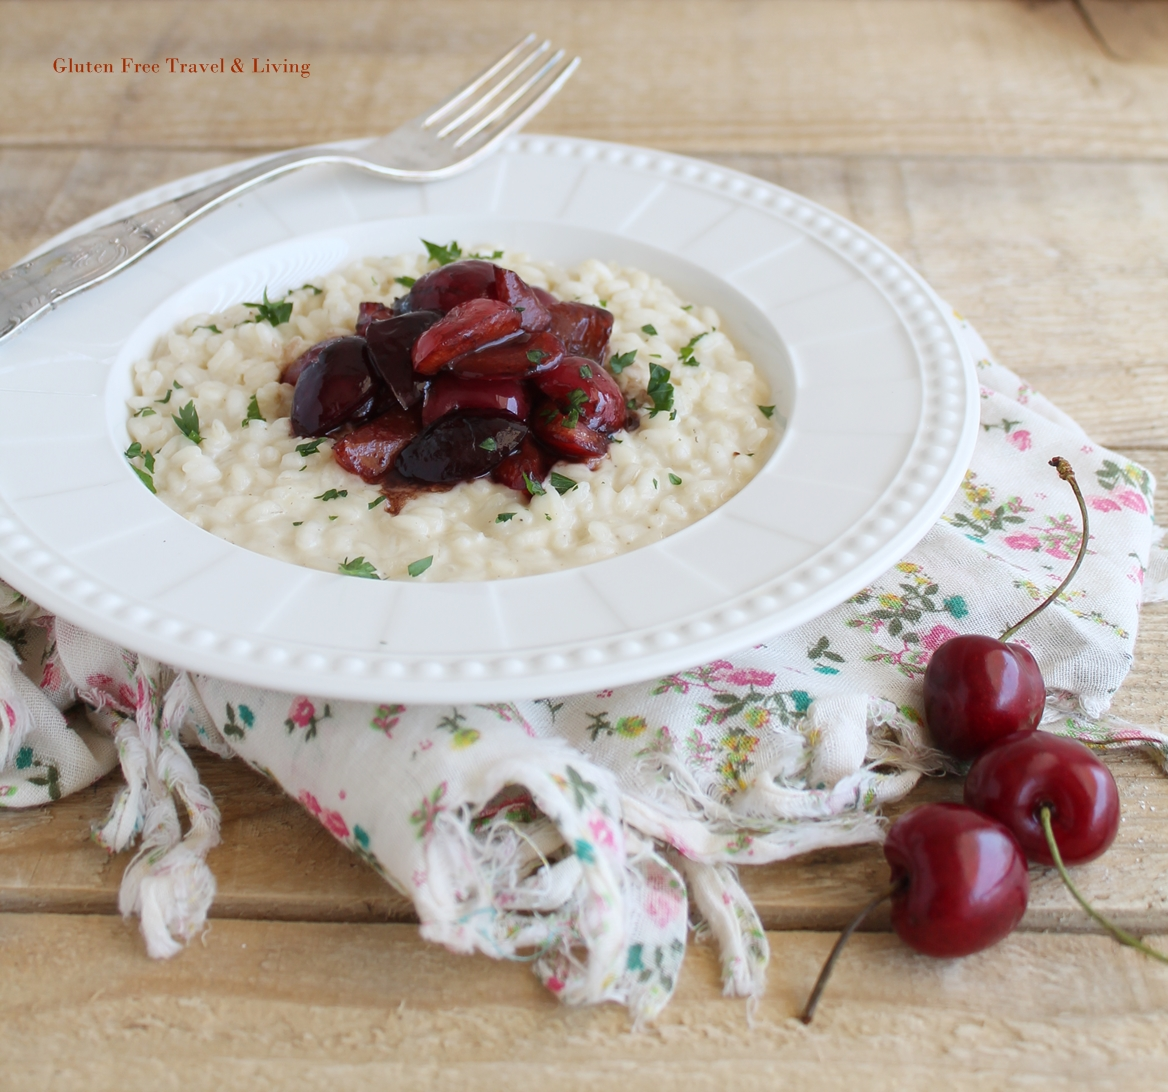 Risotto con ciliegie e robiola senza glutine - Gluten Free Travel and Living